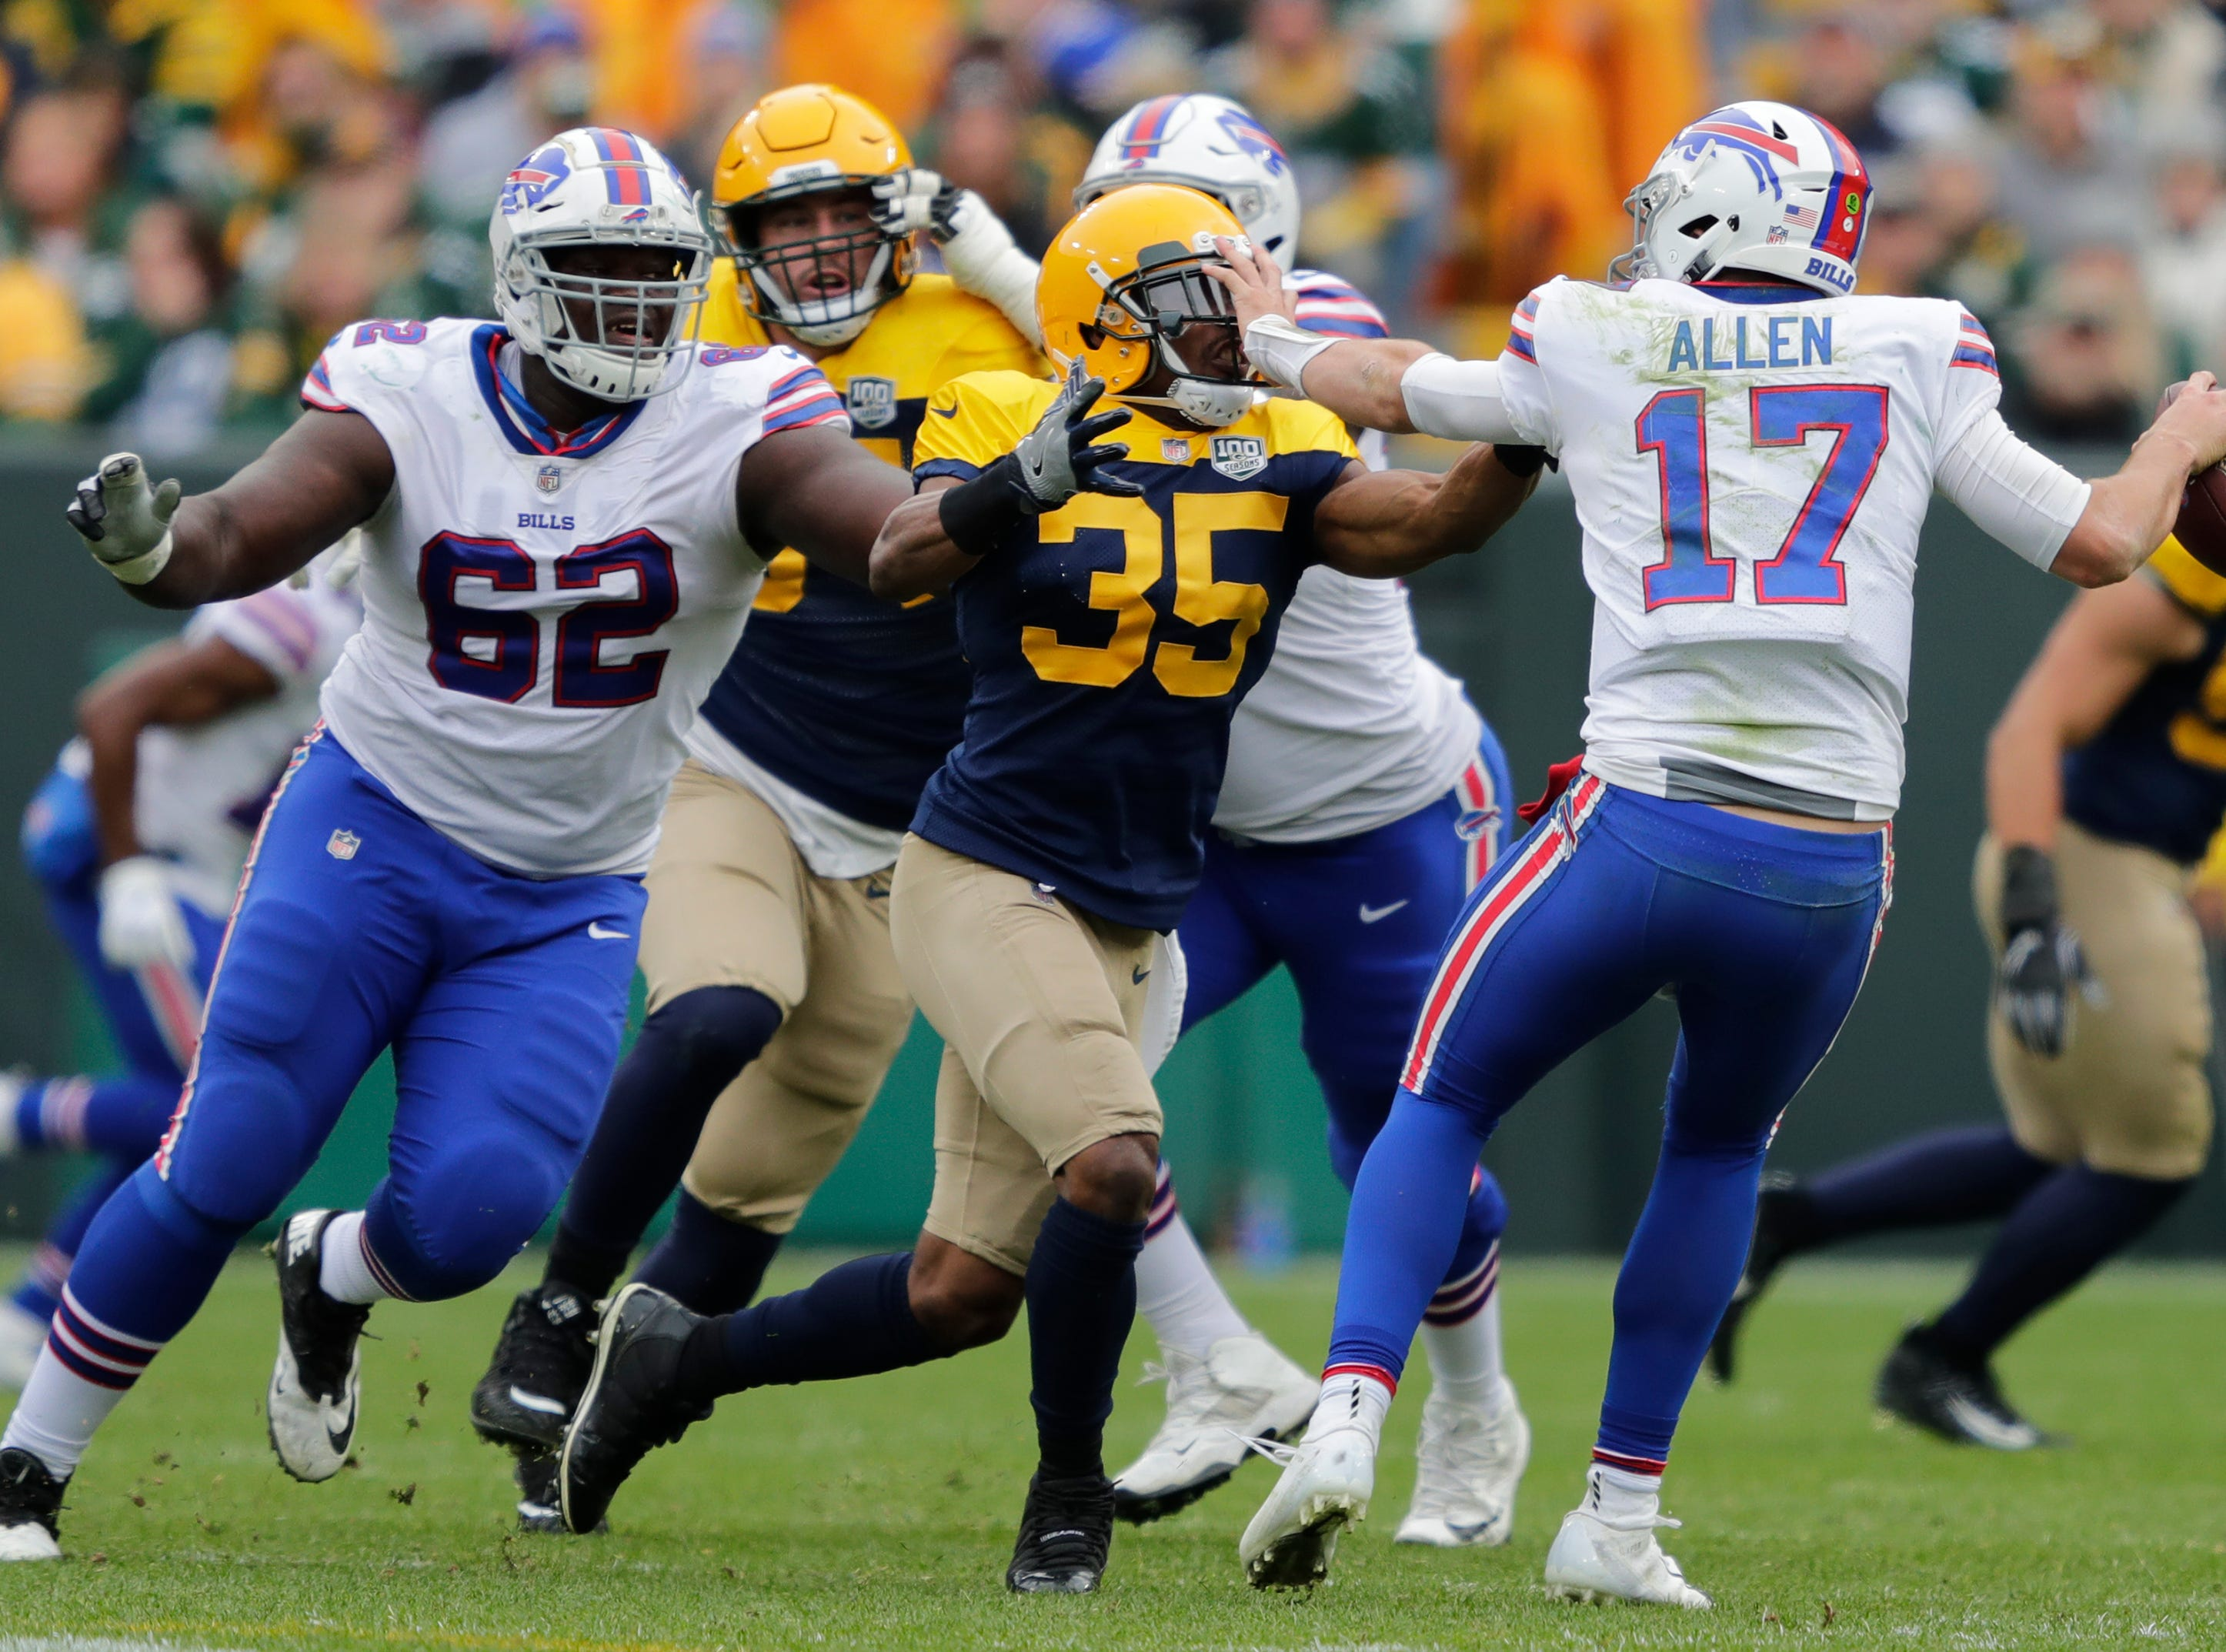 Green Bay Packers defensive back Jermaine Whitehead (35) pressures Buffalo Bills quarterback Josh Allen (17) late in the fourth quarter during their football game Sunday, Sept. 30, 2018, at Lambeau Field in Green Bay, Wis. 